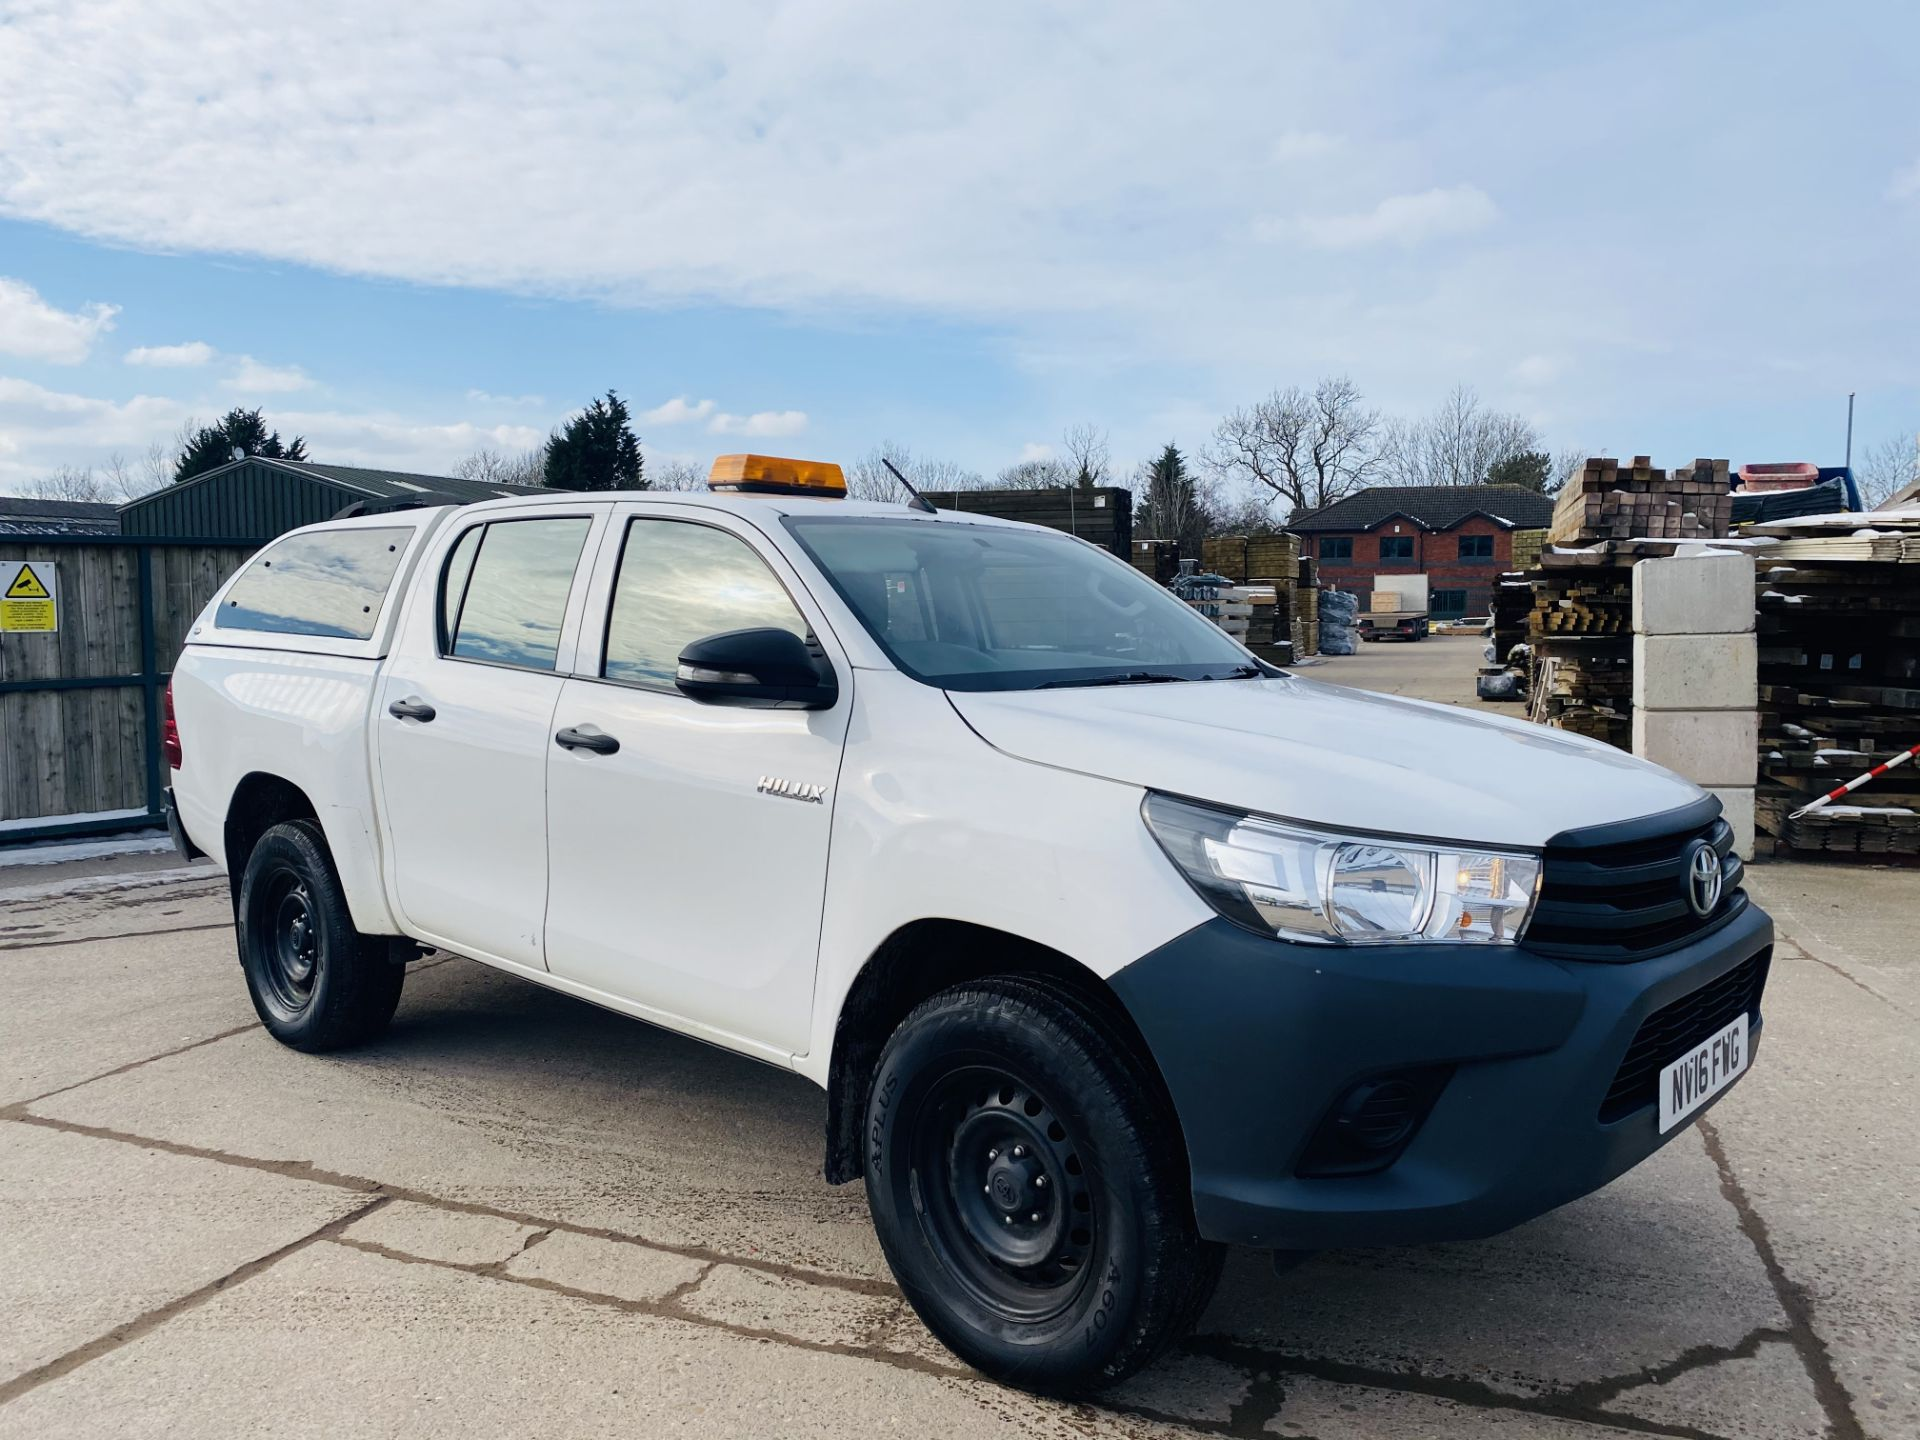 """TOYOTA HILUX """"ACTIVE"""" DOUBLE CAB PICK-UP (2016 - NEW MODEL) 1 OWNER - AIR CON - REAR CANOPY- LOOK"""